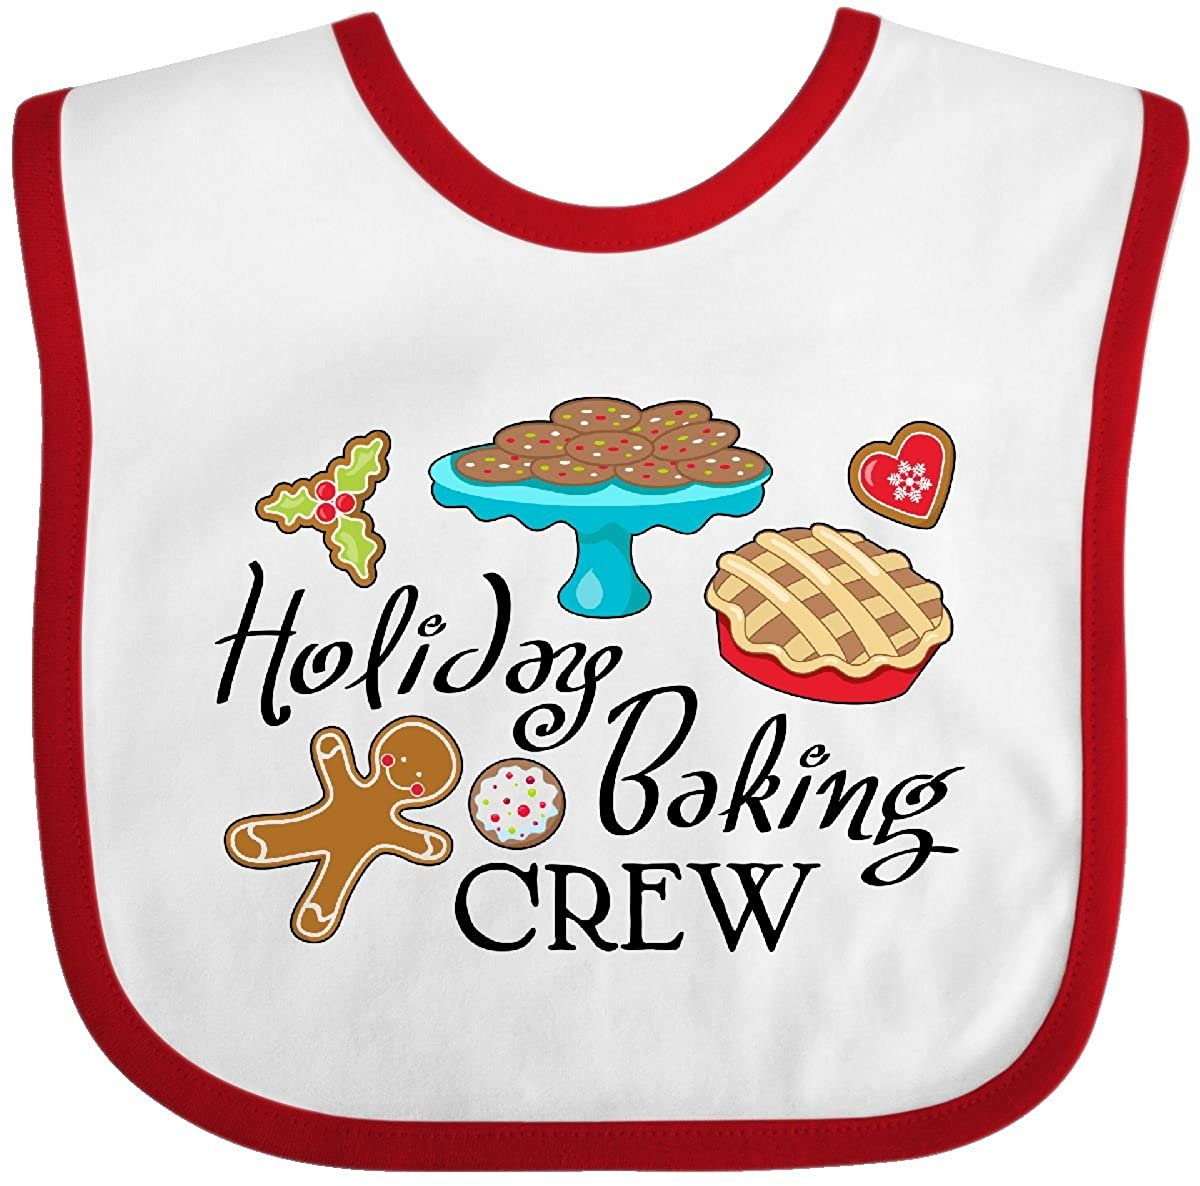 Holiday Baking Crew Baby Bib